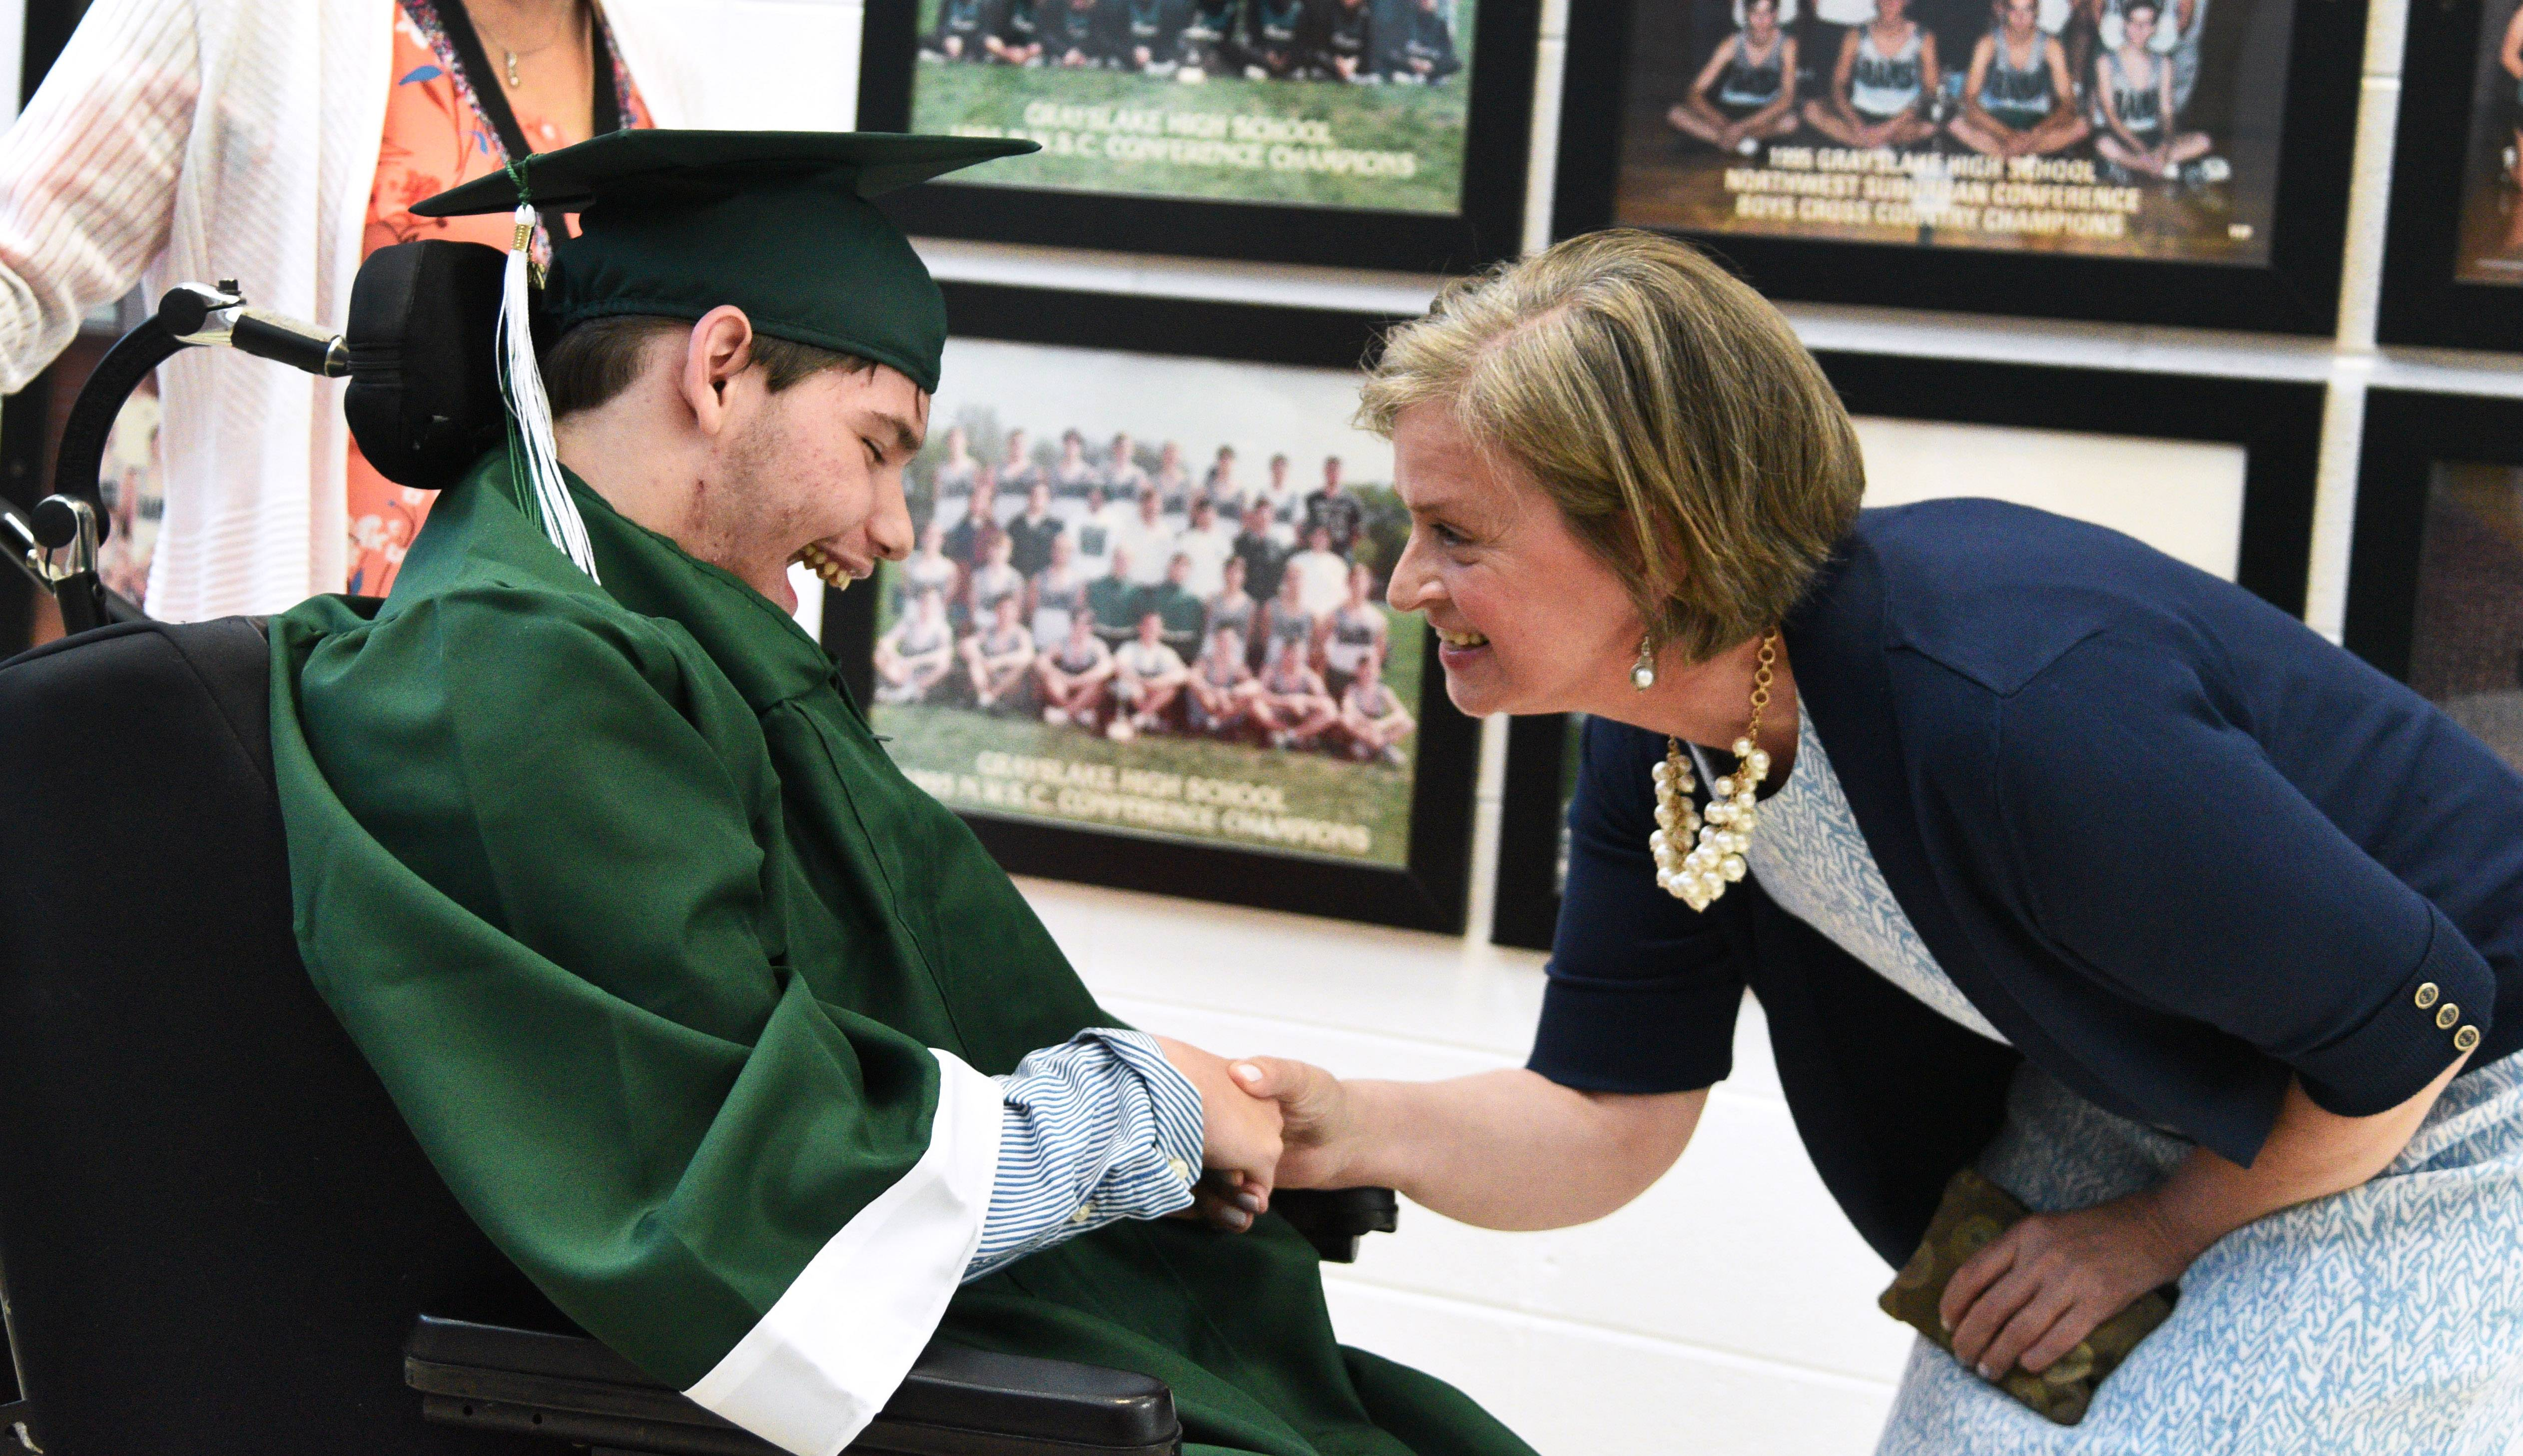 Grayslake District 127 school board President Kathleen Conlon-Wasik, right, congratulates Grayslake Central High School student Angelo Butler at the start of Thursday's graduation ceremony. Angelo completed four years of the Special Education District of Lake County (SEDOL) program at the school.